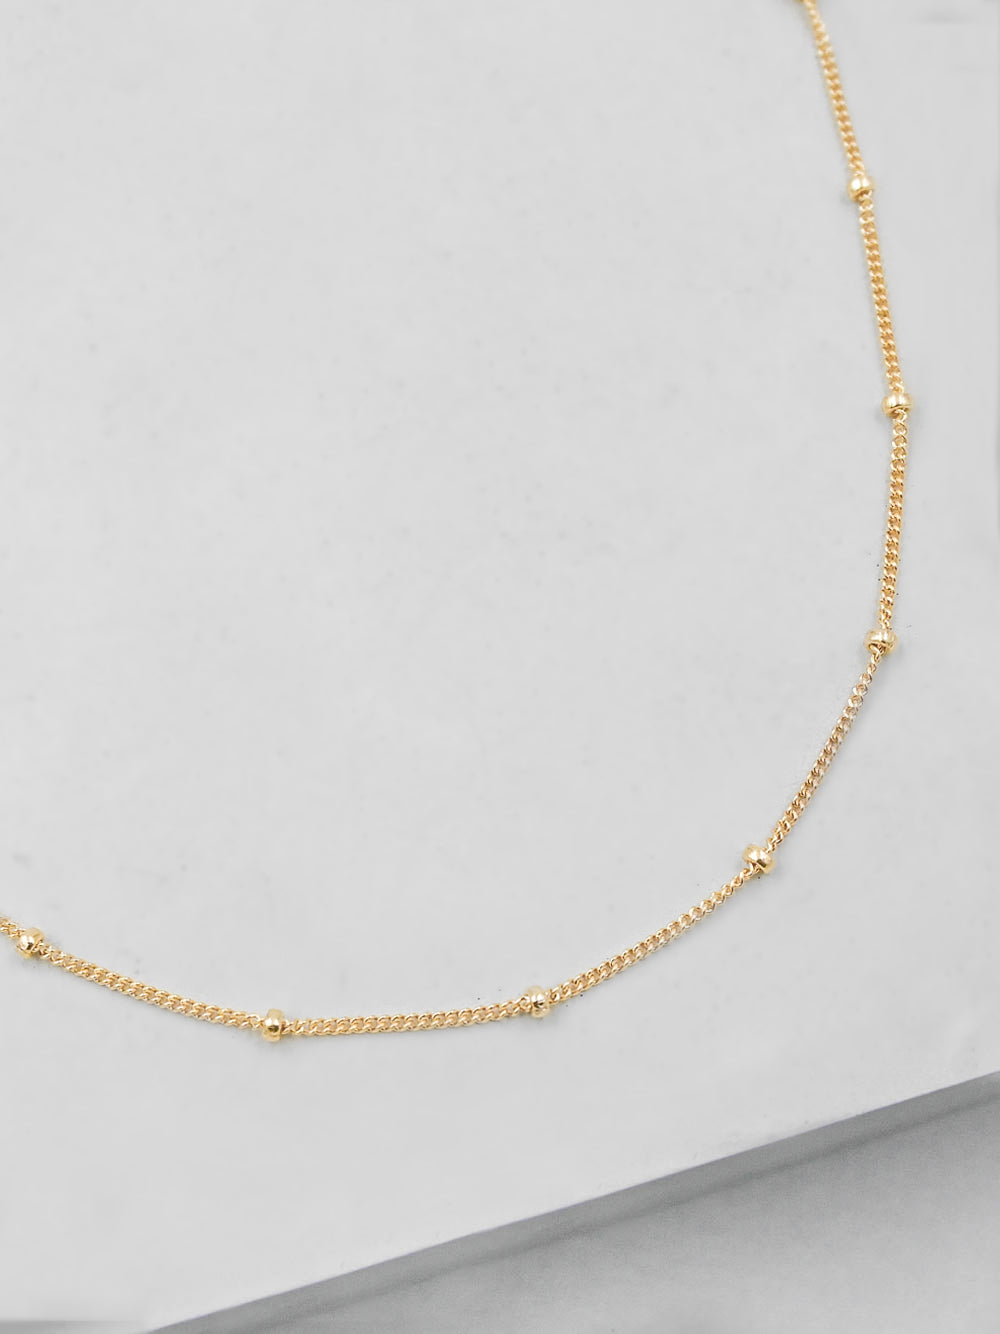 Beaded Gold Filled Chain by The Faint Hearted Jewelry